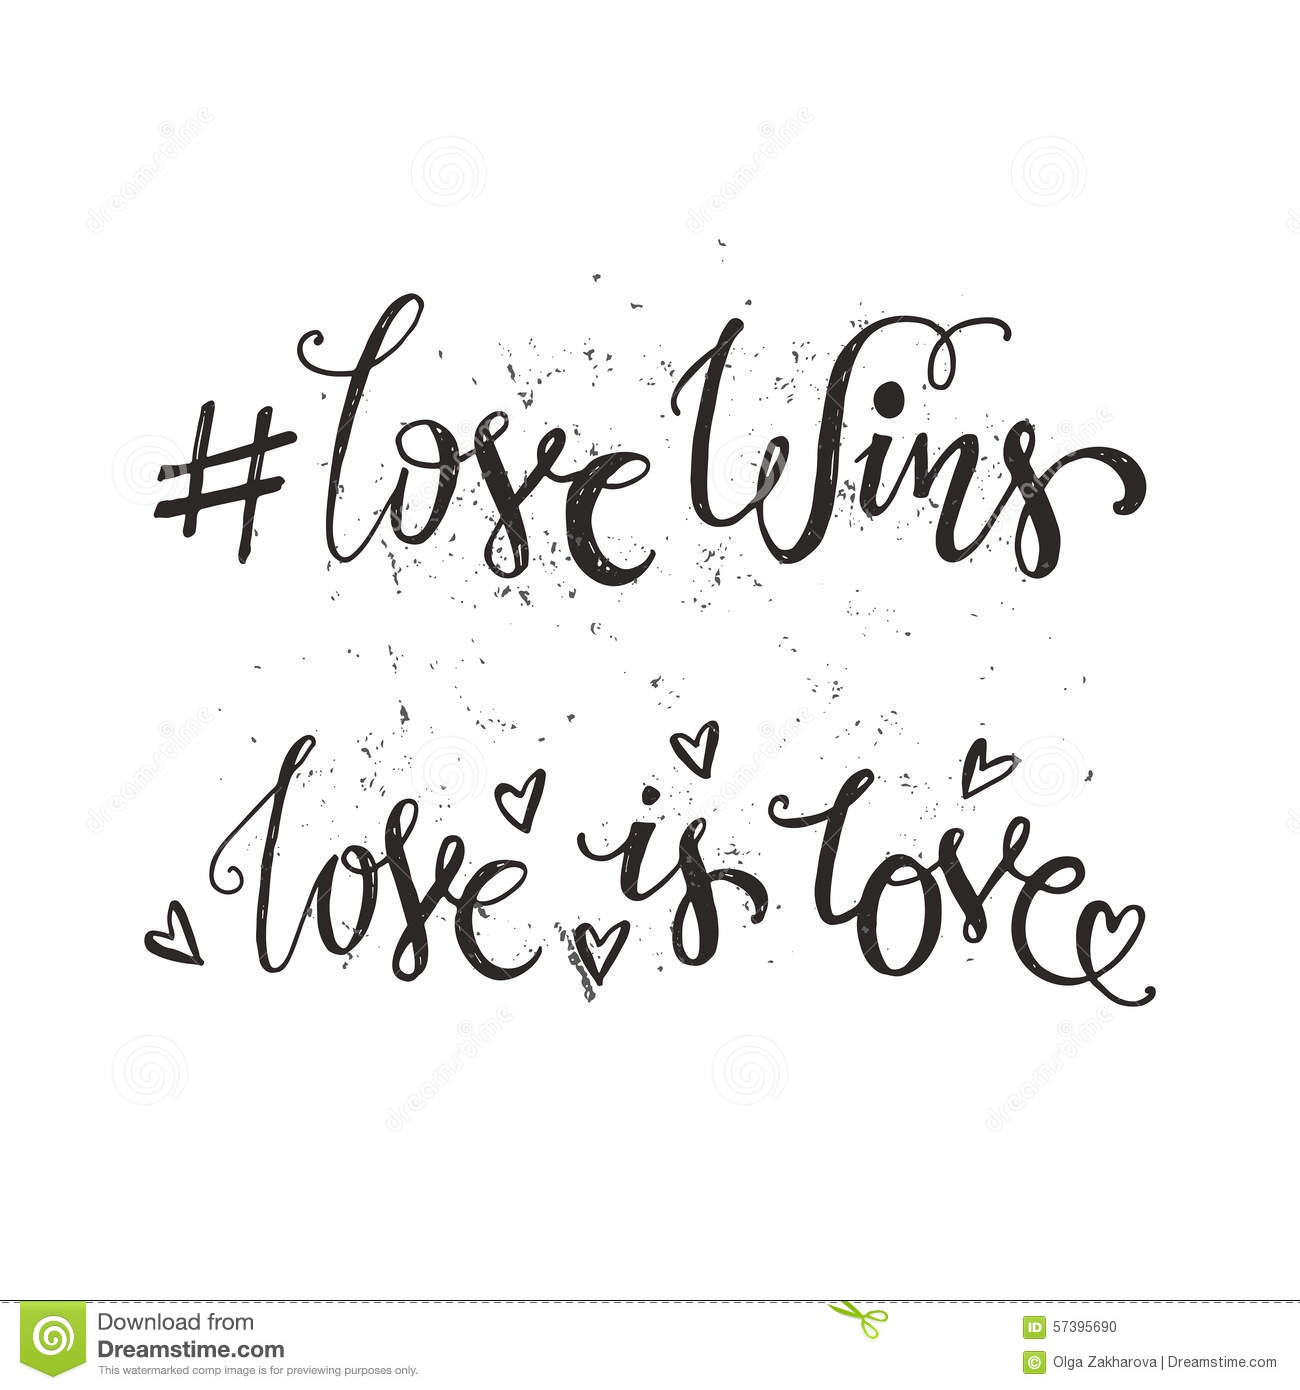 Handdrawn quotes - Love Wins and Love is Love. LGBT community design ...